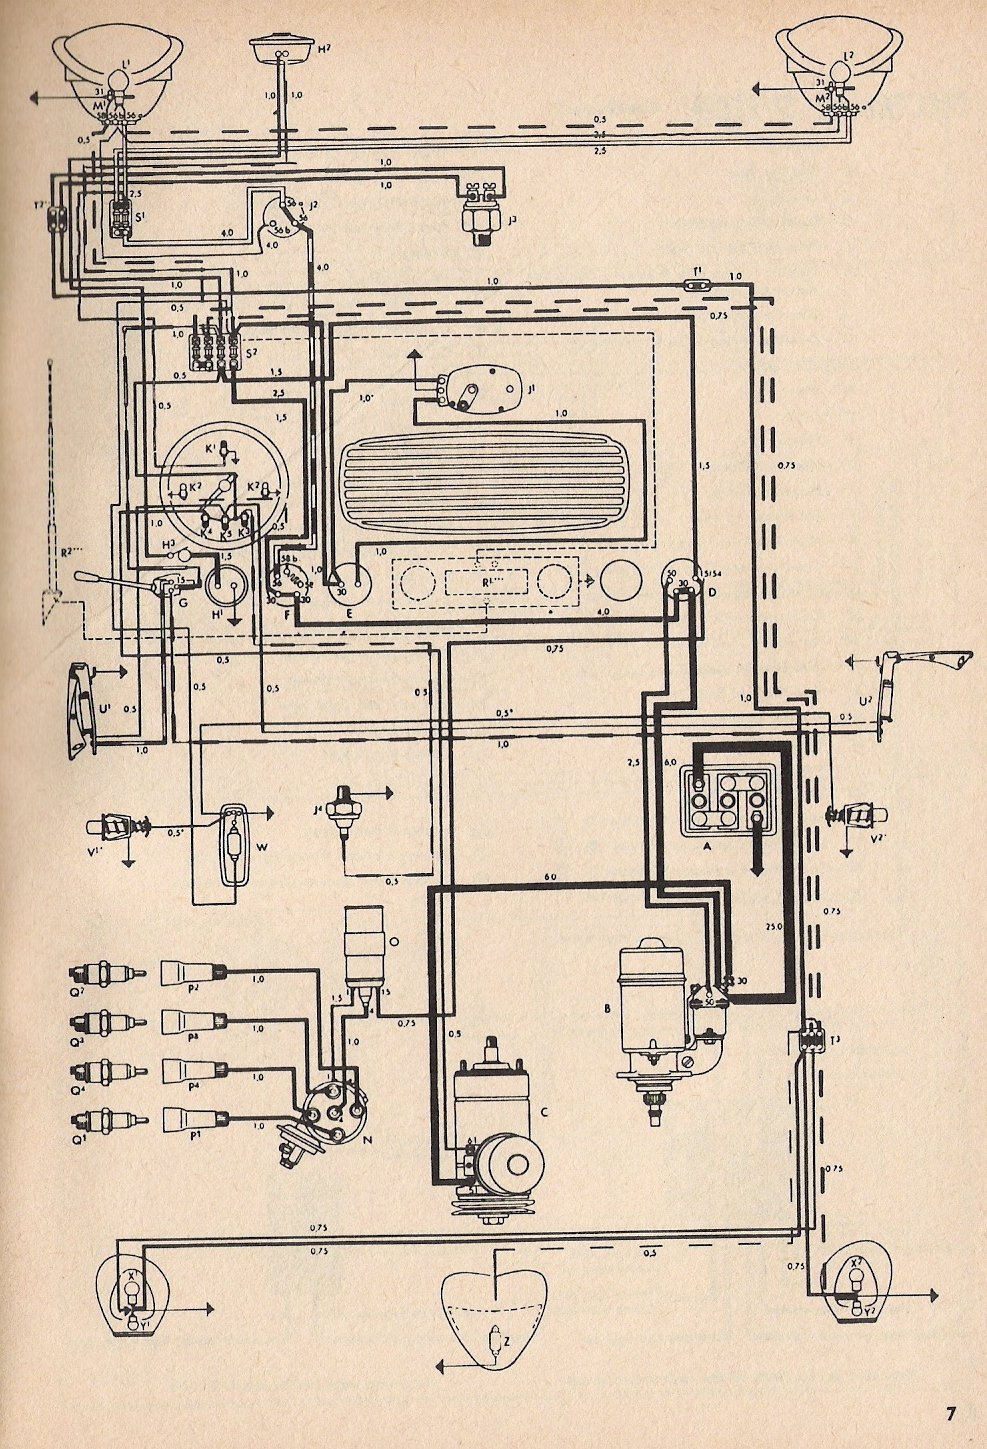 1971 Vw Wiring Diagram Everything About Volkswagen Beetle Stereo Harness Library Rh 93 Kaufmed De Bug Super